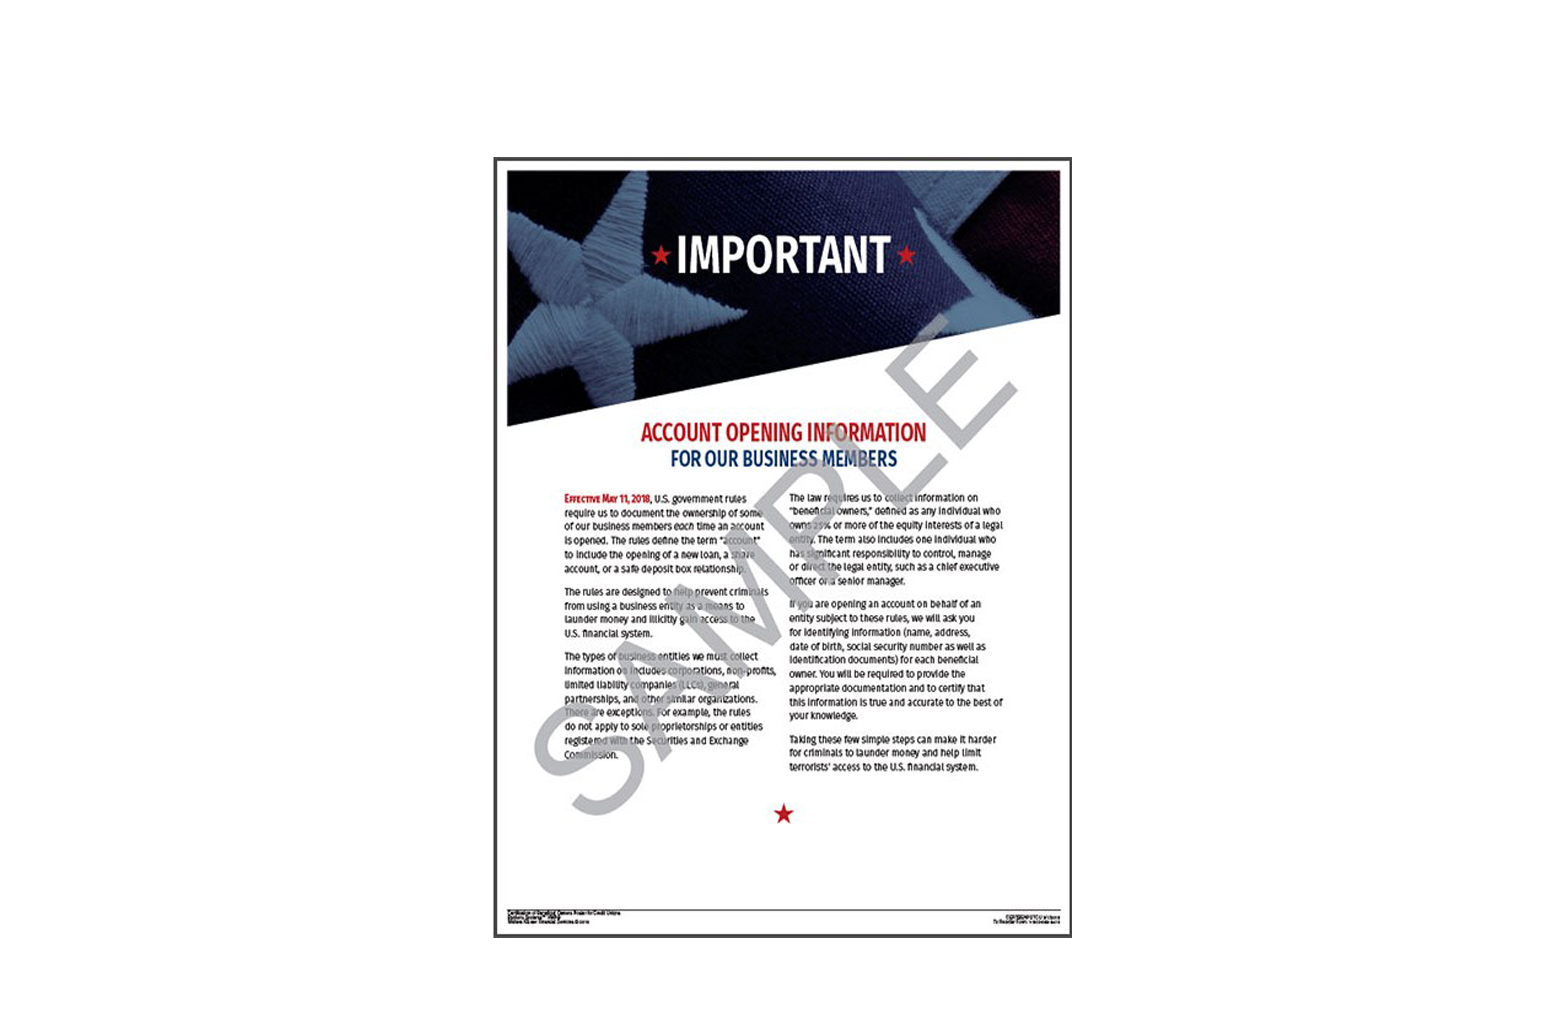 Certification of Beneficial Owners Poster Credit Union